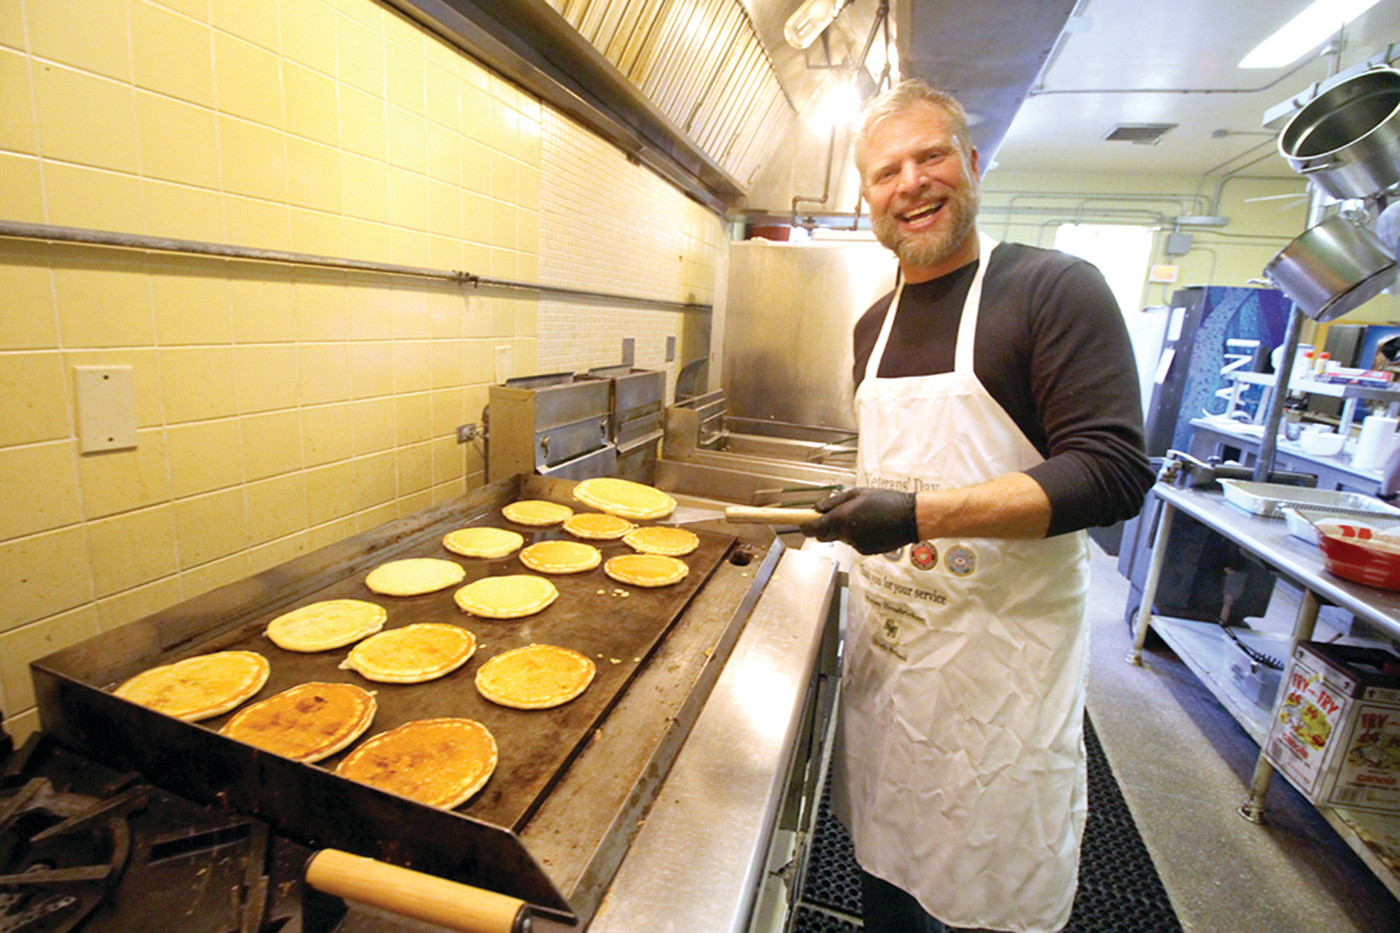 HE DIDN'T FLIP OUT: Jason Pariseau mans the grill at the second annual pancake breakfast at Hendricken Friday morning.